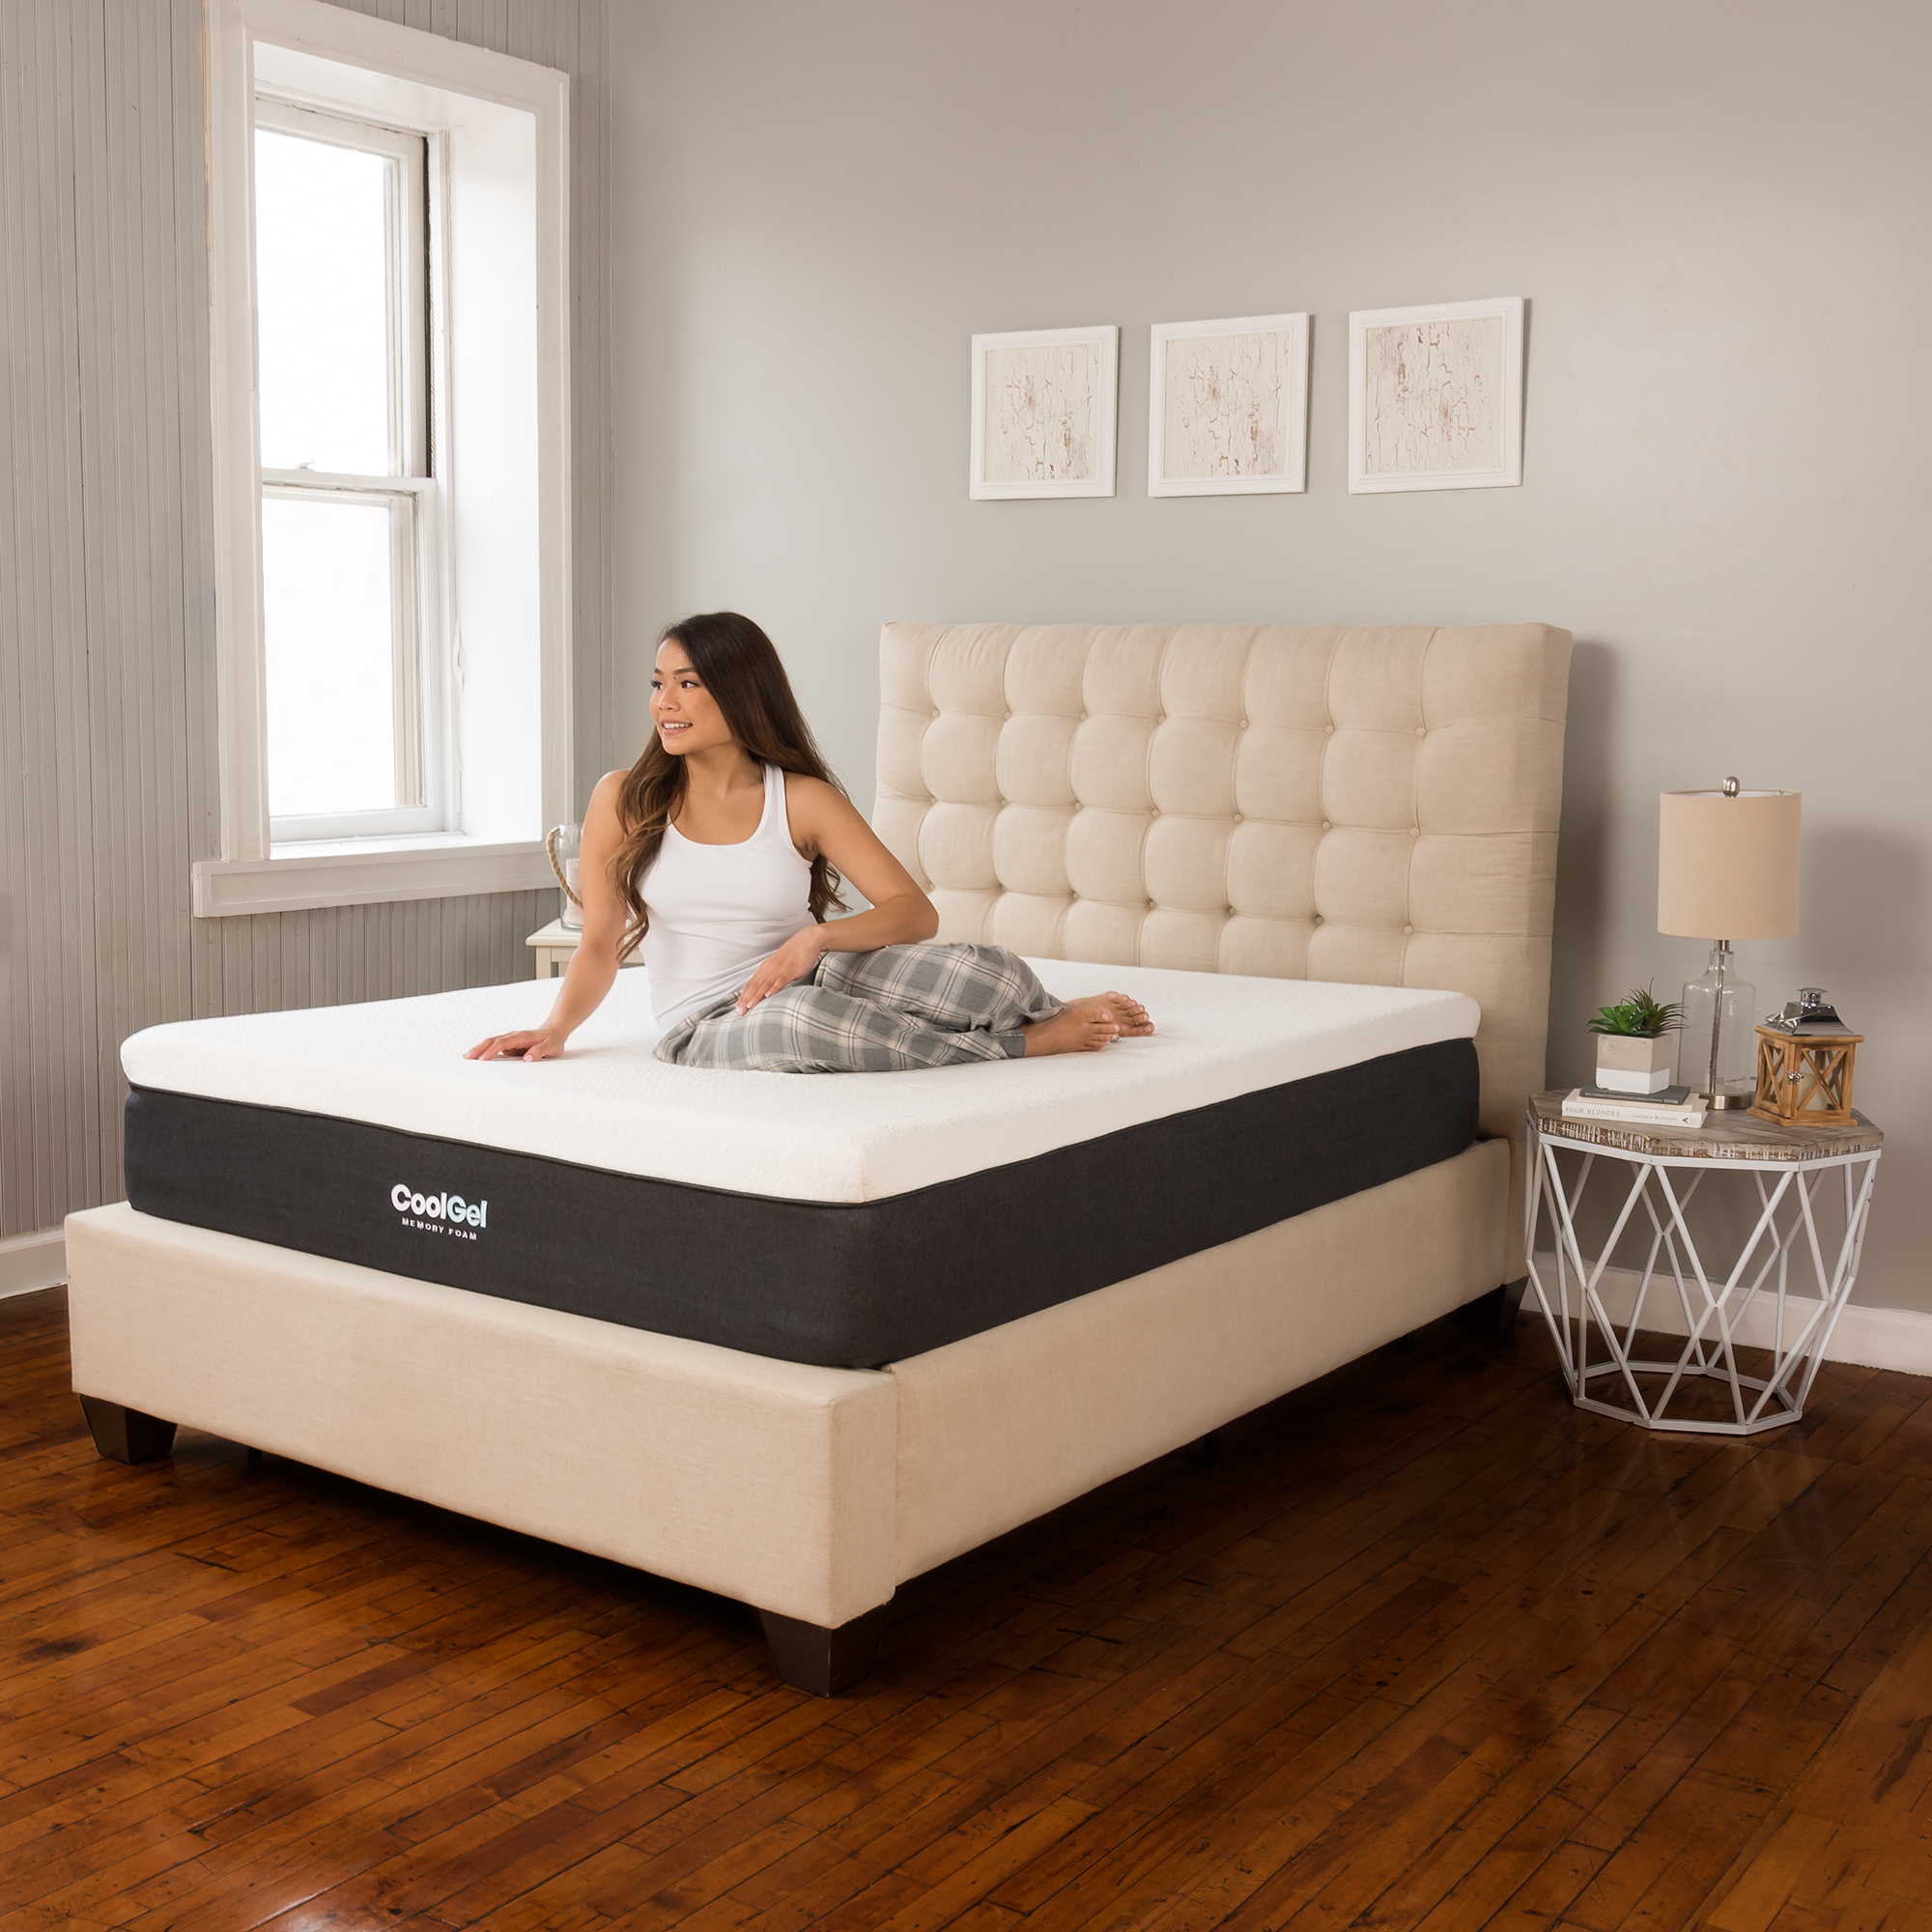 cool cloud best dynastymattress comfortable to gel sleep pro perfect inch memory top foam mattress breeze ensure elegance